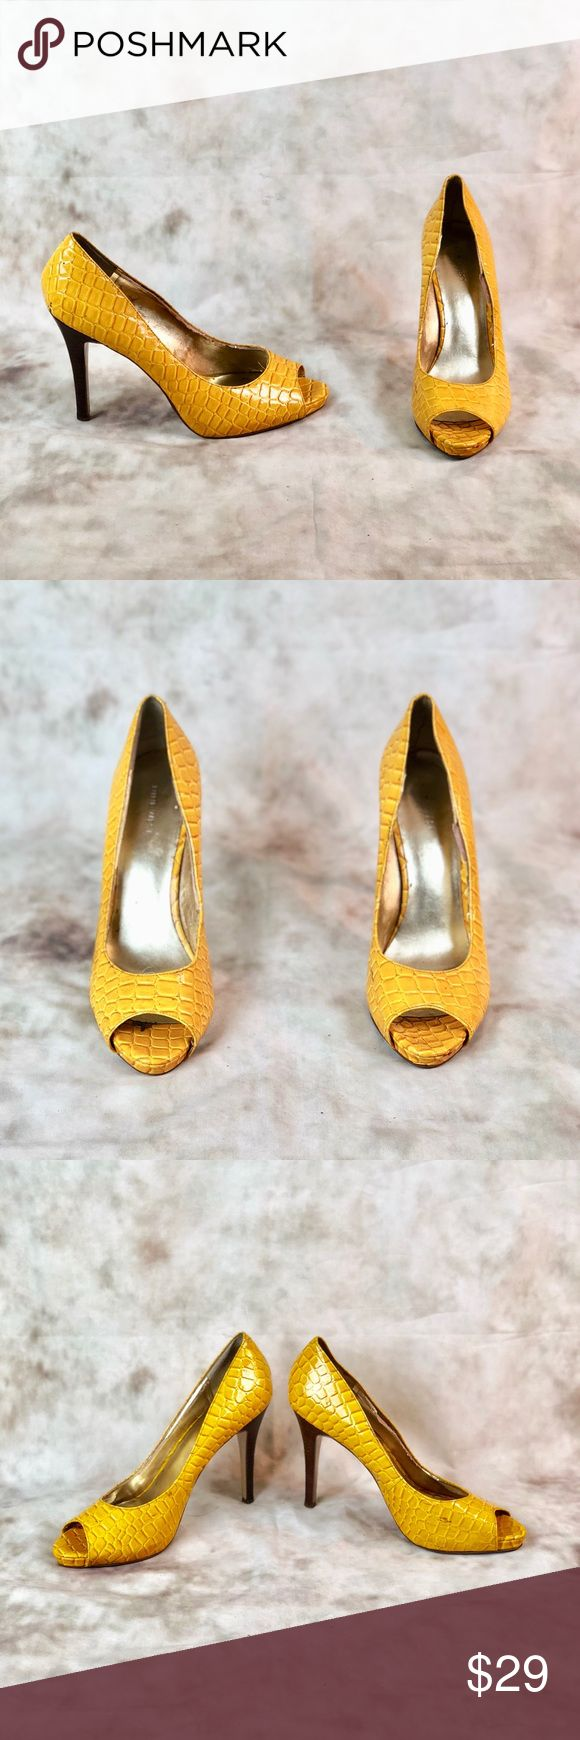 """Nine West Faux Crocodile Yellow Peeptoe Pumps Women's size 11. Beautiful golden Pumps with faux crocodile pattern, wooden 4"""" heels and a peep toe. These shoes are pre owned but in great condition, they do show the usual signs of wear on the sole and a minor scuff. But they're in overall great condition! Nine West Shoes Heels"""